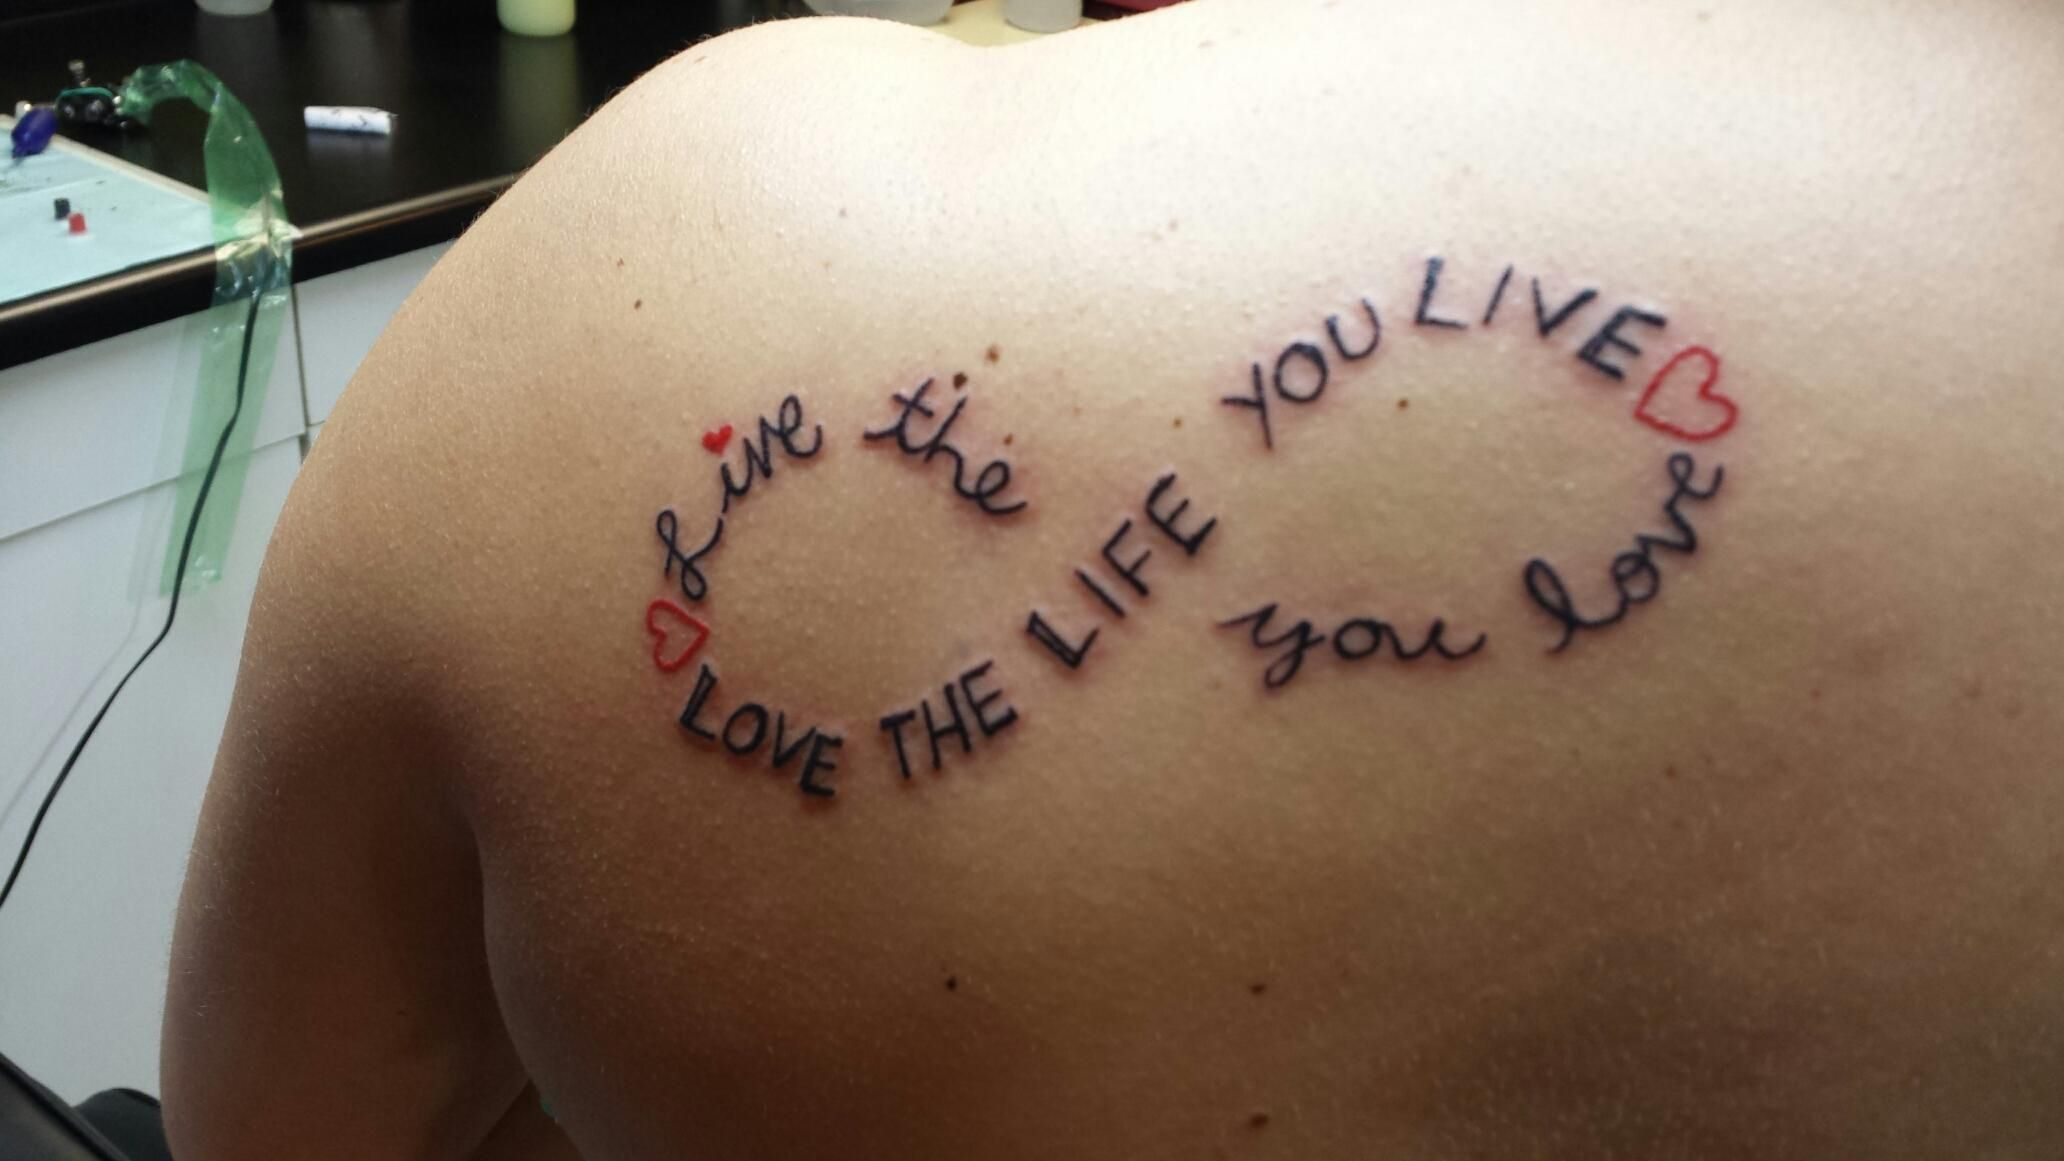 My First Tattoo Live The Life You Love Love The Life You Live